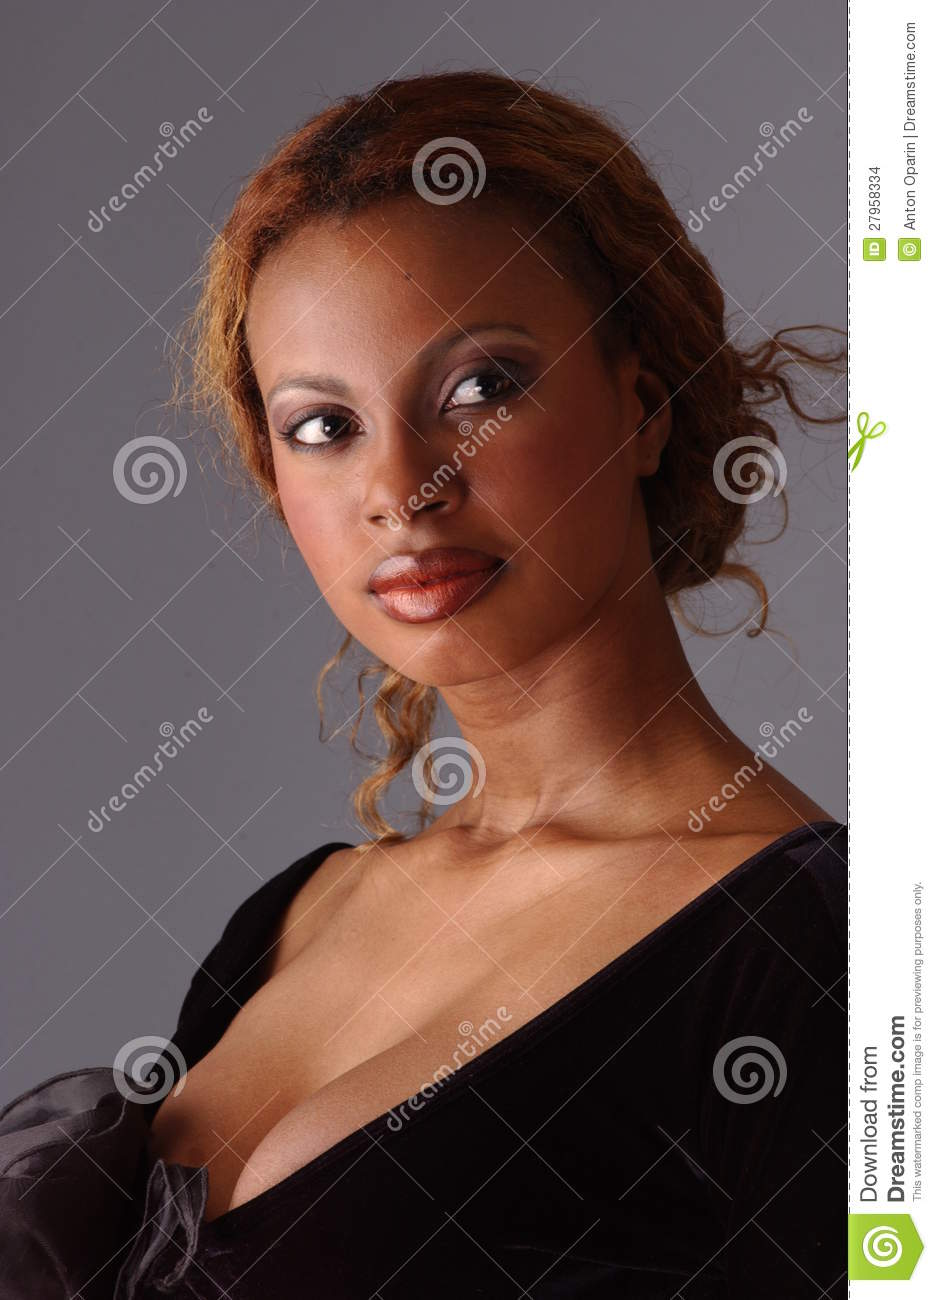 8b51e5aef7a Beautiful African American model posing wearing fashionable dresses